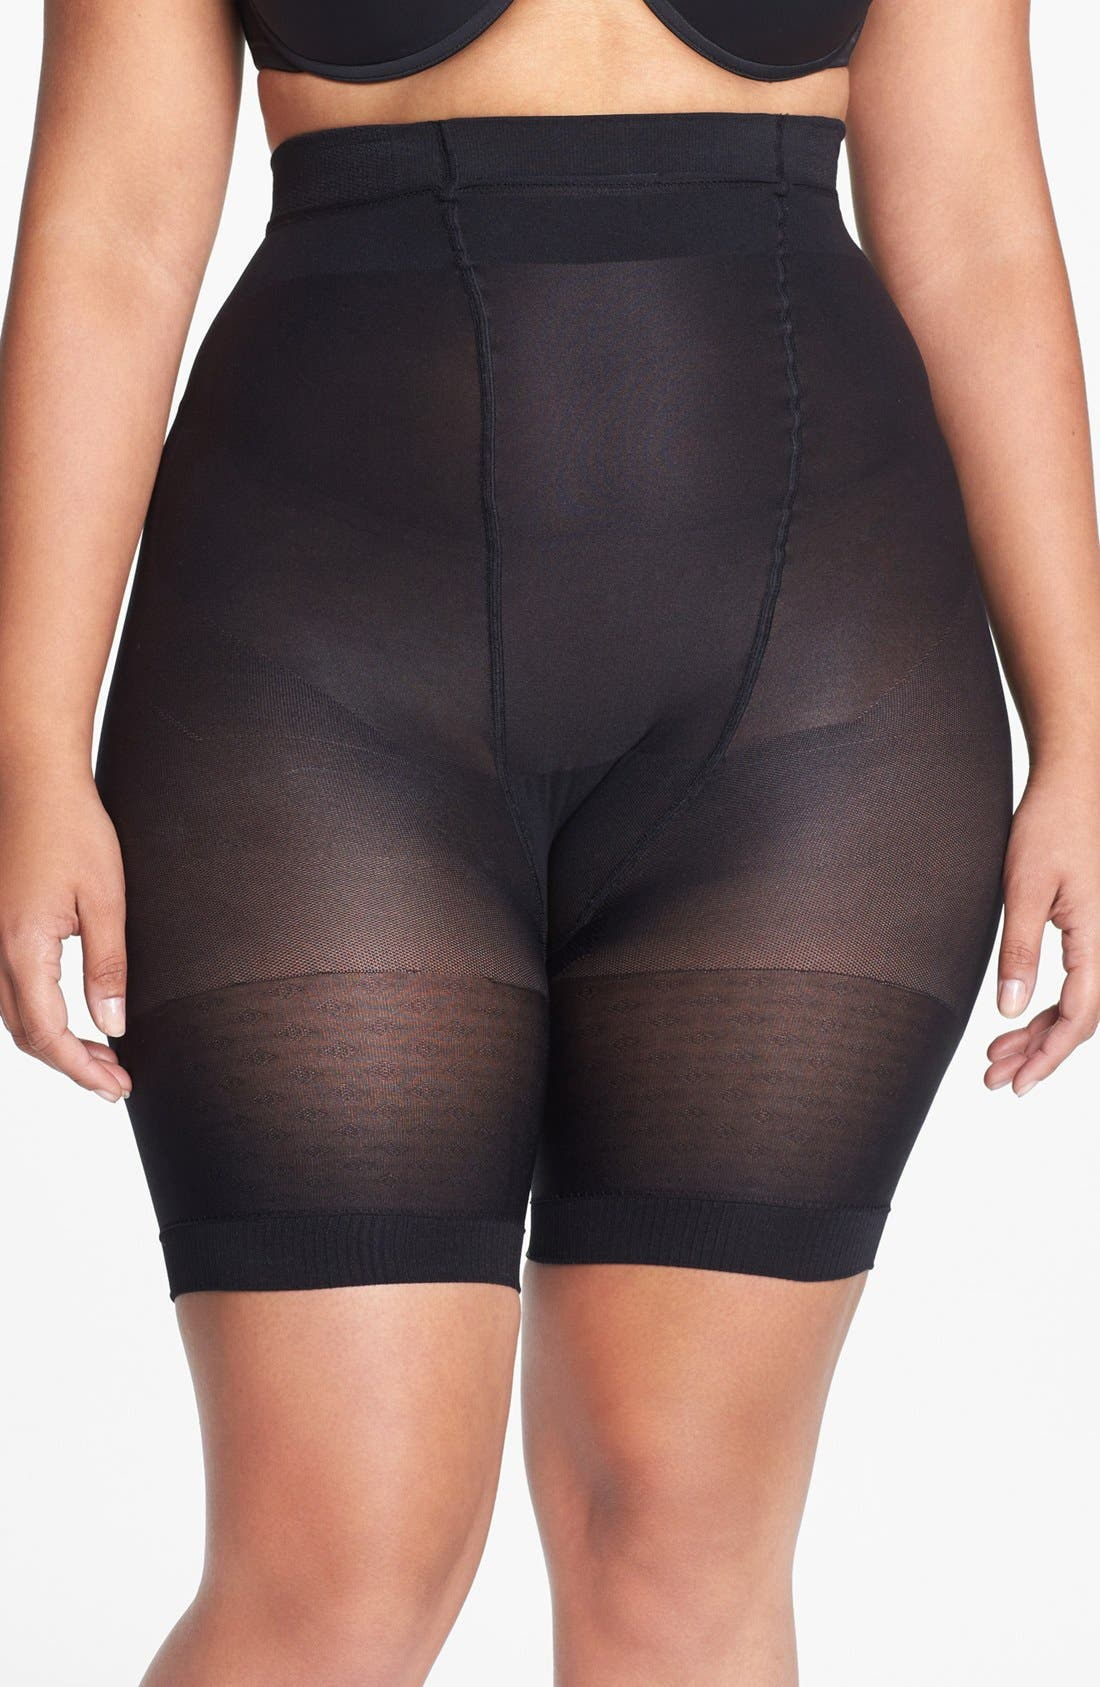 Main Image - Oroblu 'Shock Up MX' Boxer Shaper (Online Only)